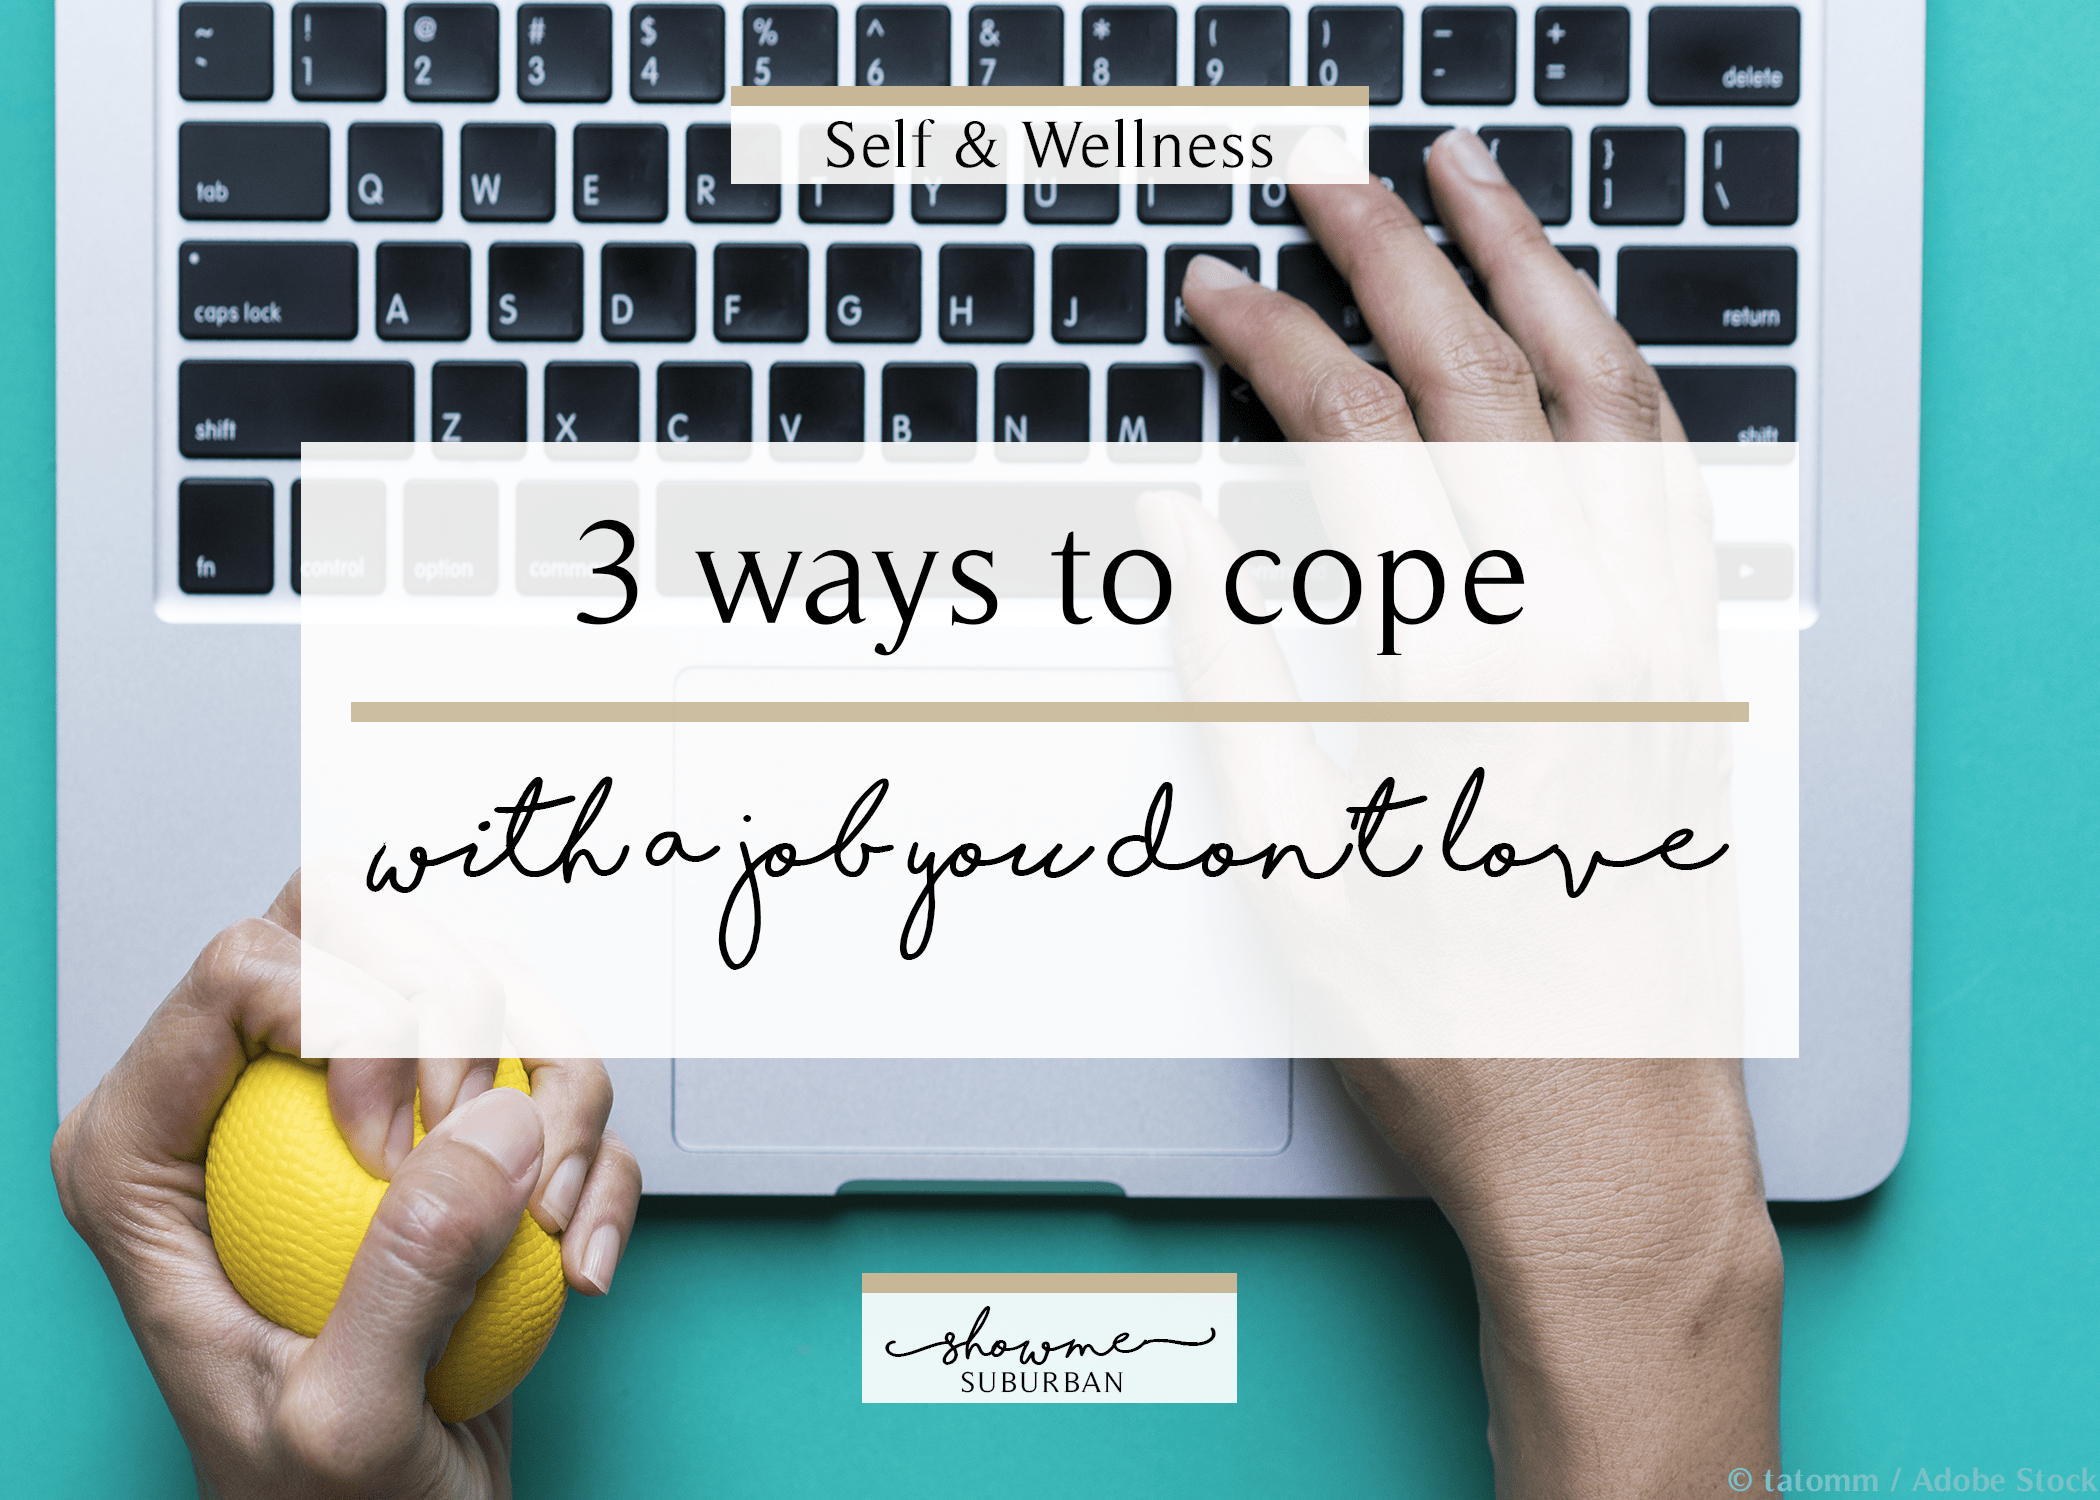 ShowMe Suburban | 3 ways to cope with a job you don't love